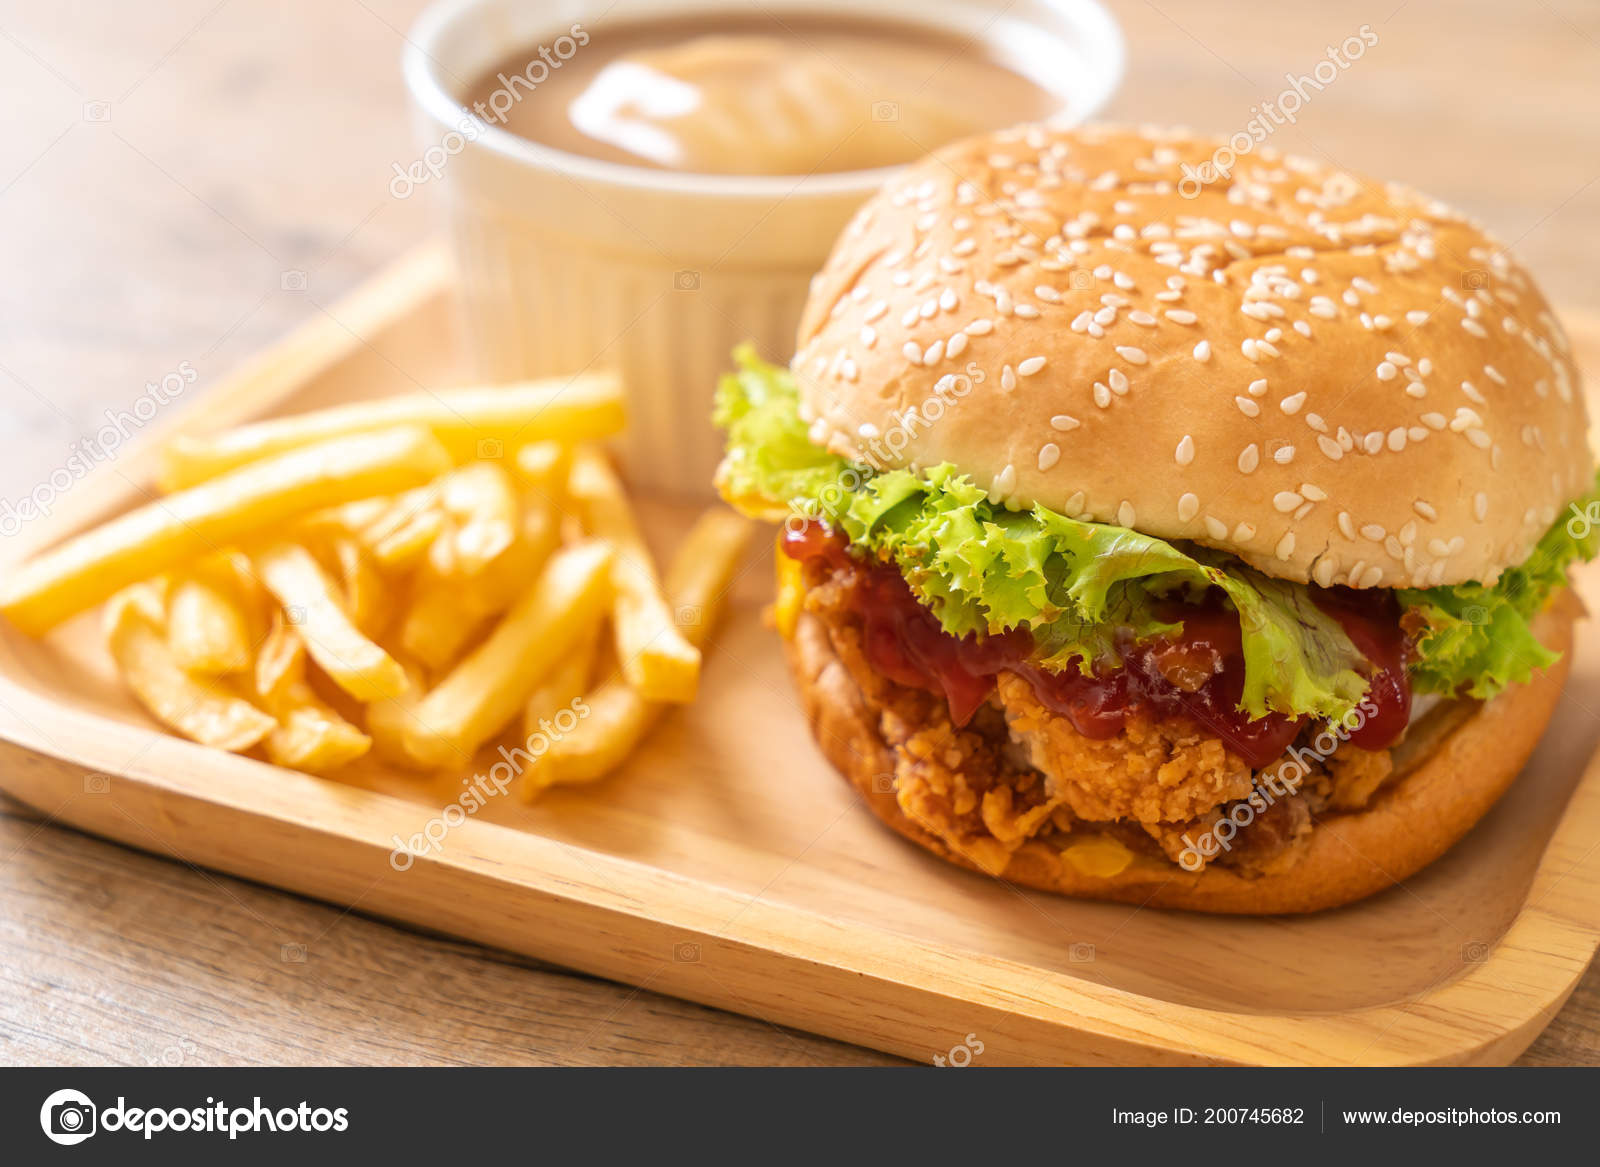 Fried Chicken Burger Unhealthy Food Style — Stock Photo